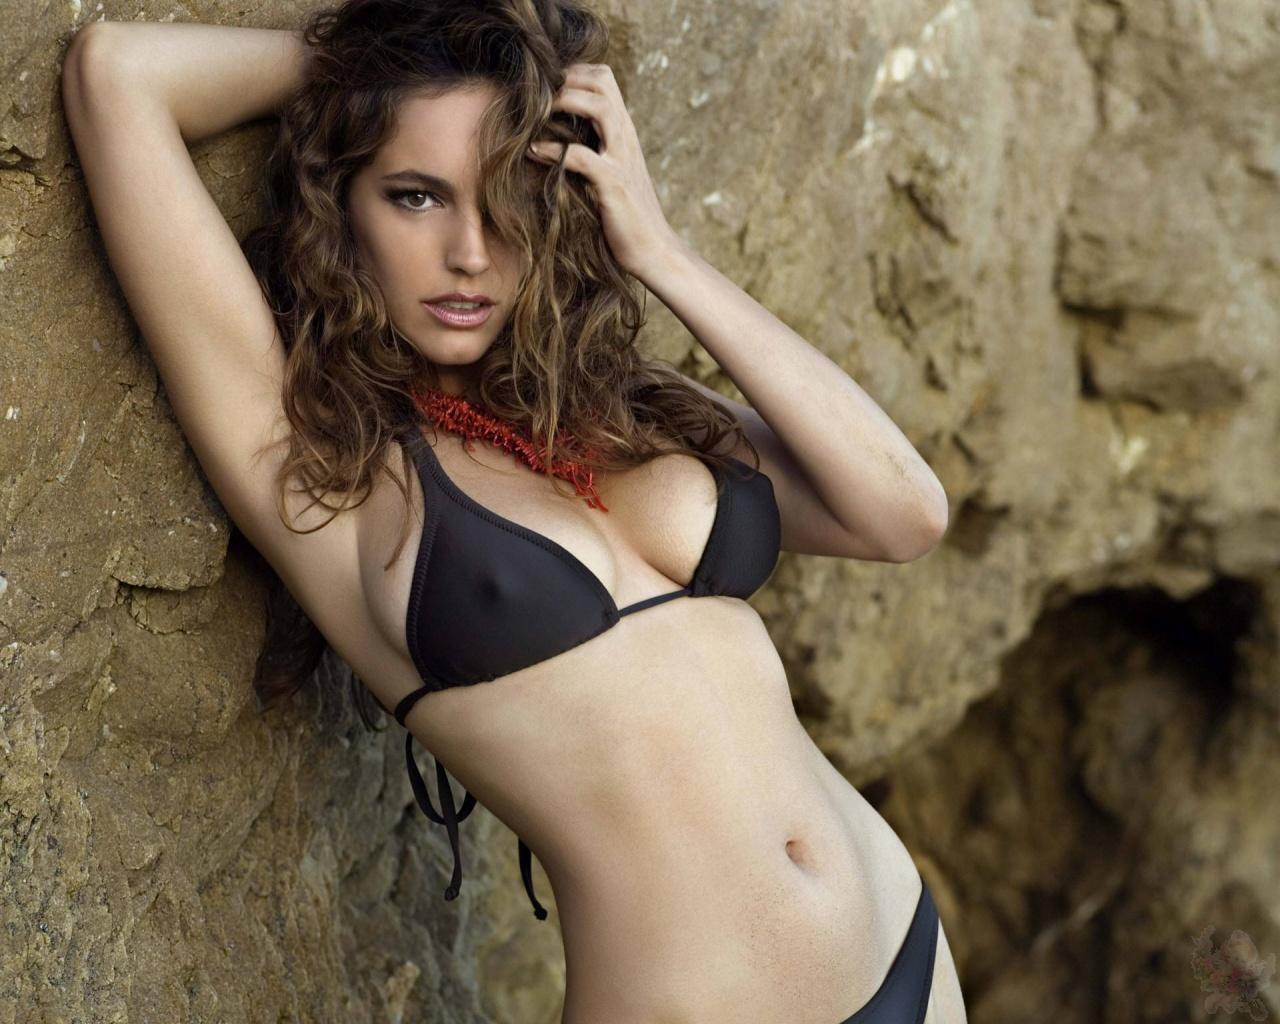 http://3.bp.blogspot.com/-RJPmuxeVsnA/TXo9PDYGB1I/AAAAAAAAFAc/hN76ZOZlZH8/s1600/actress_kelly_brook_hot_wallpaper_08.jpg